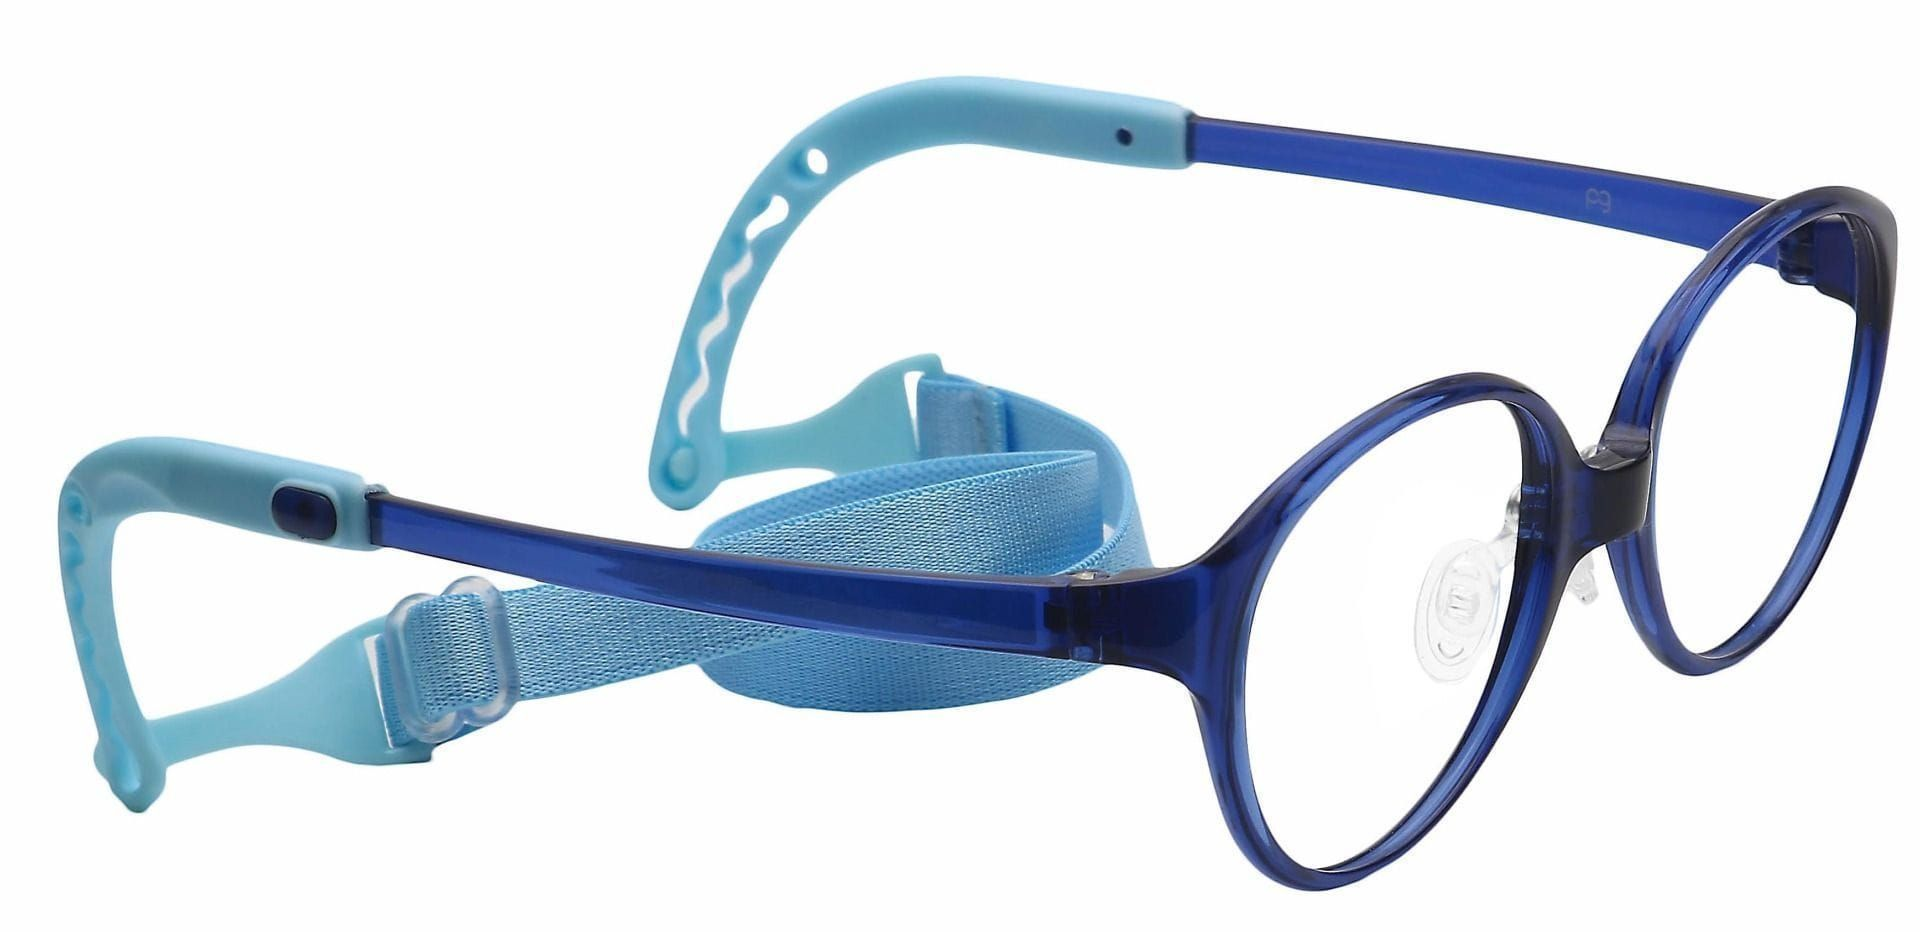 Zany Oval Prescription Glasses - Blue